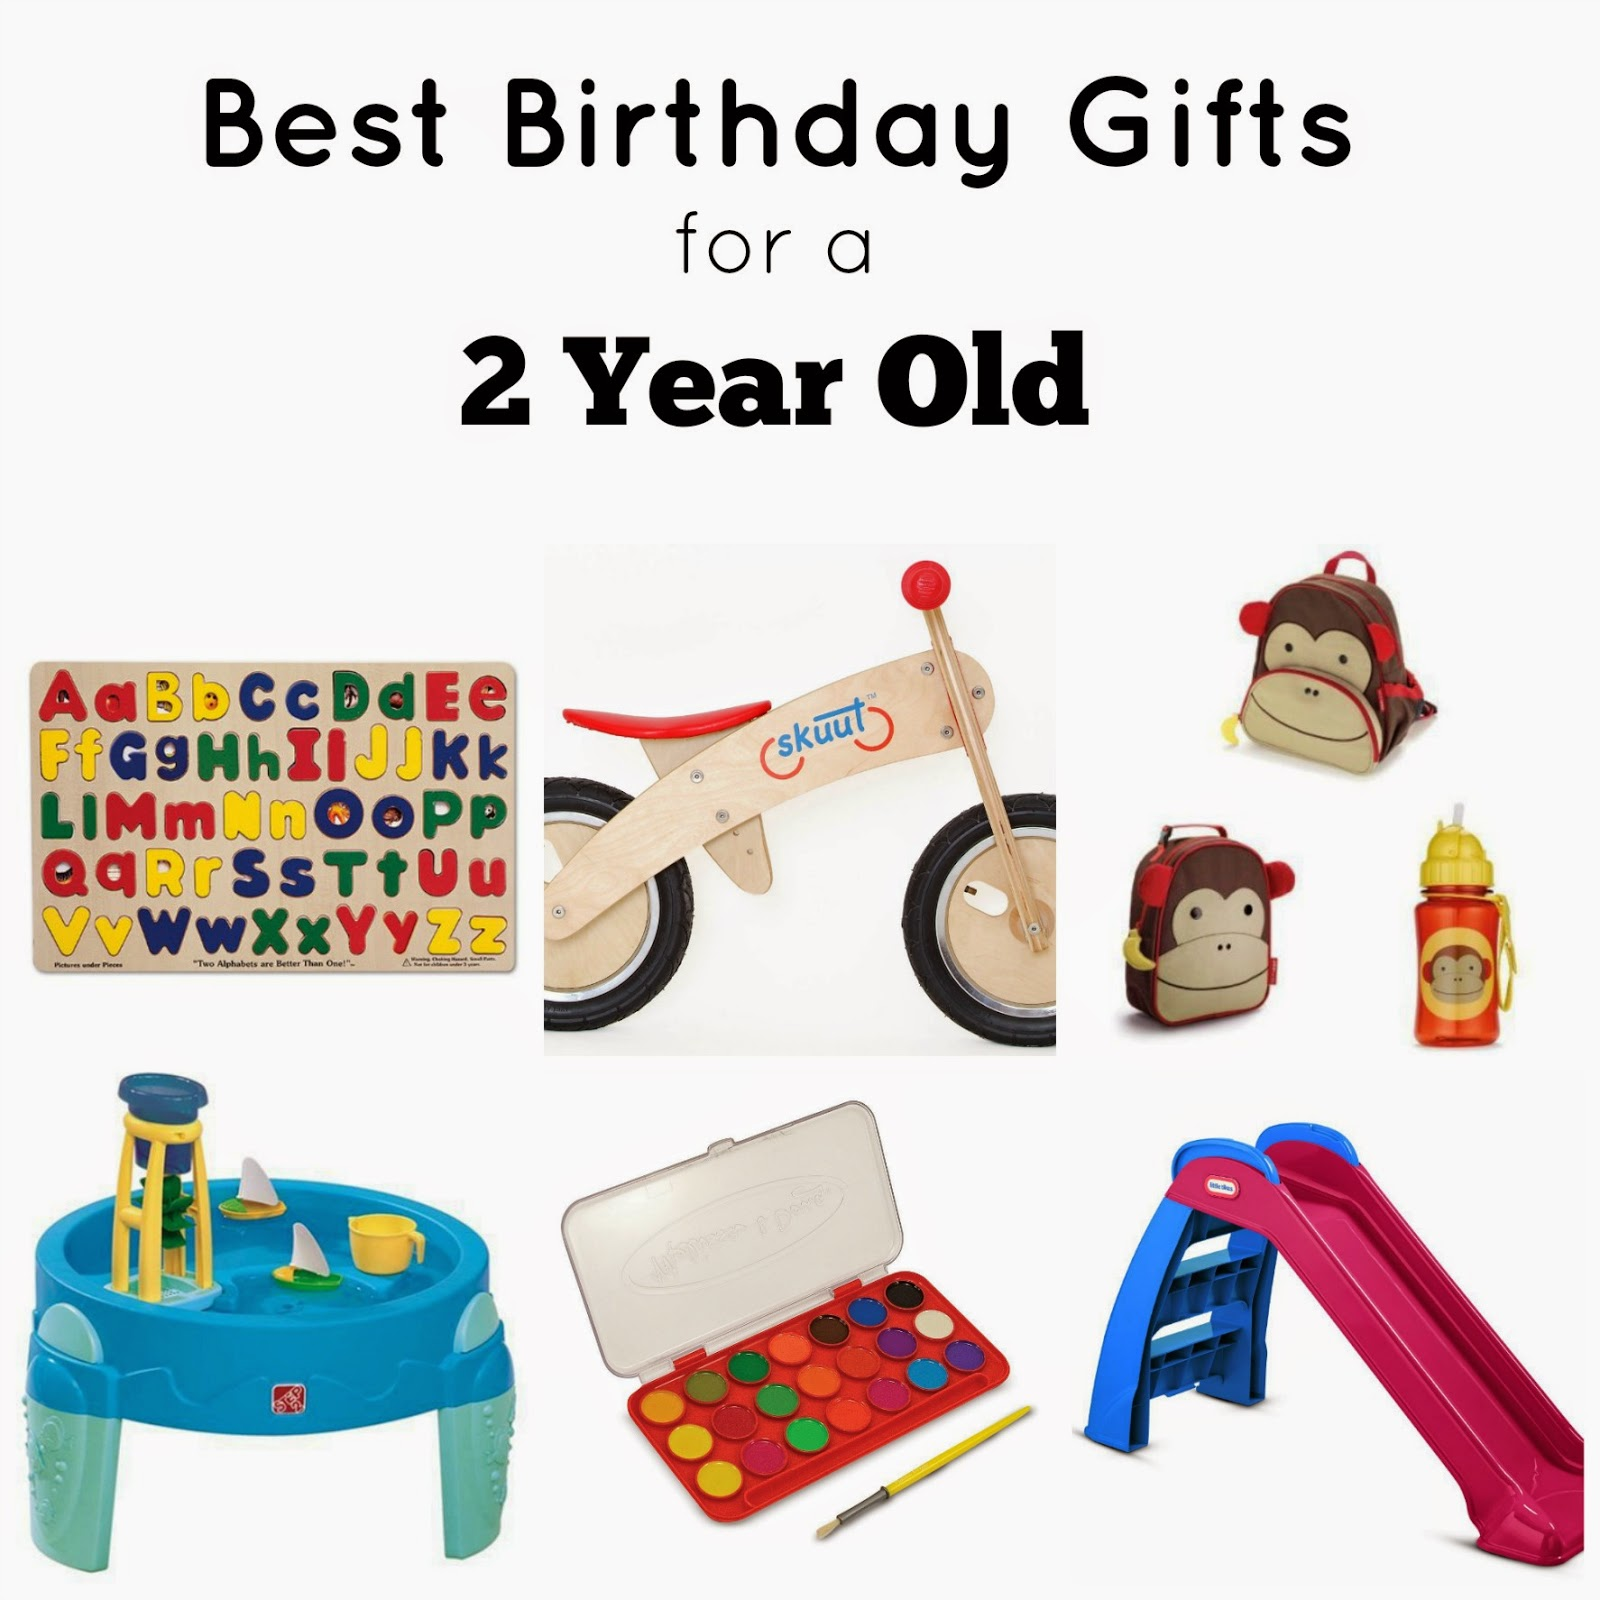 Best Birthday Gifts For A 2 Year Old